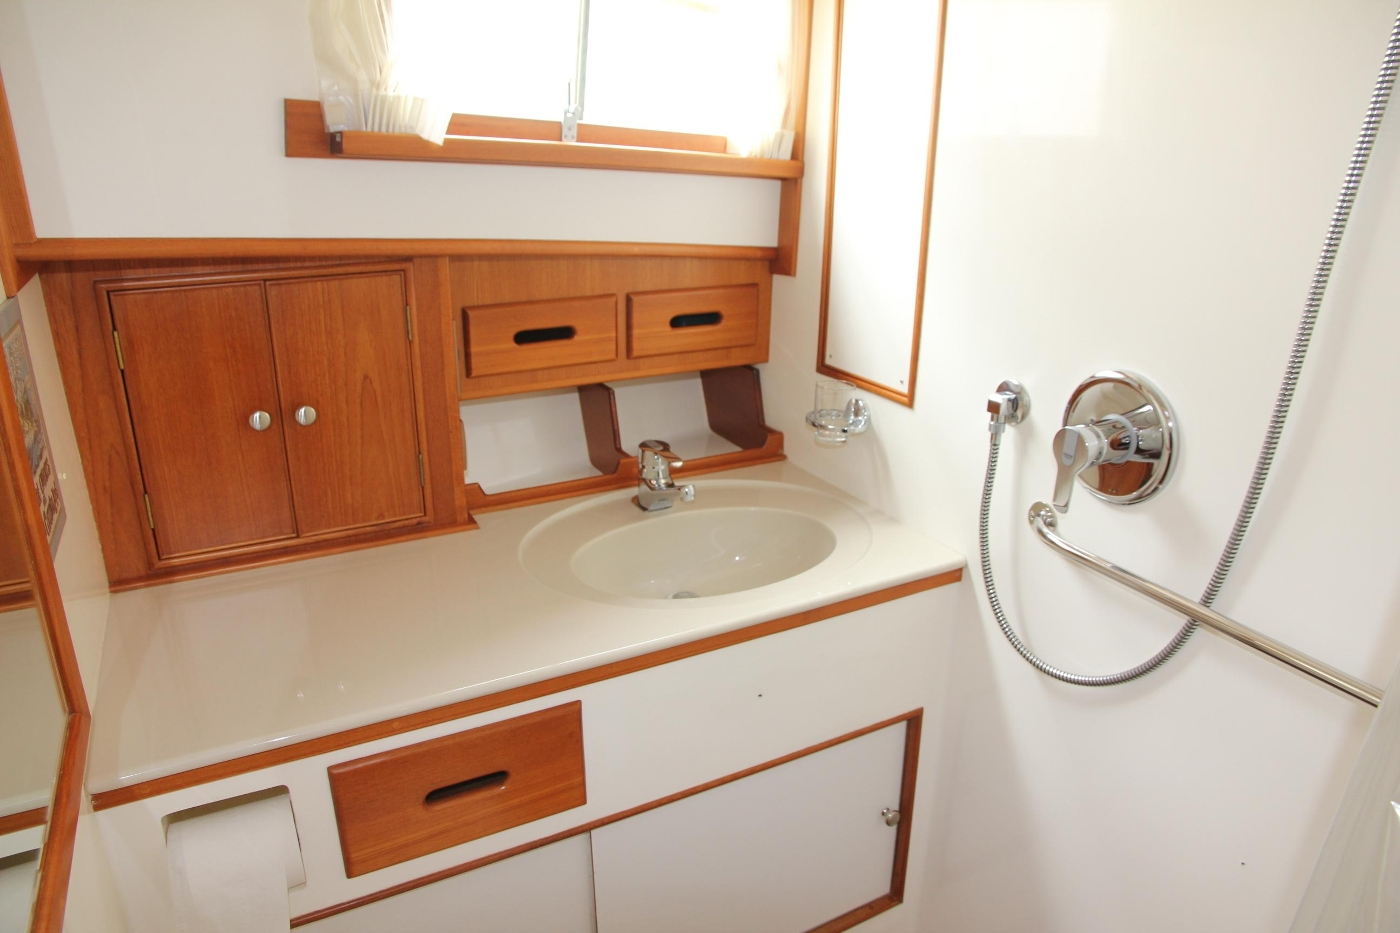 2001 Grand Banks 42 Classic, Ensuite Vanity and Sink